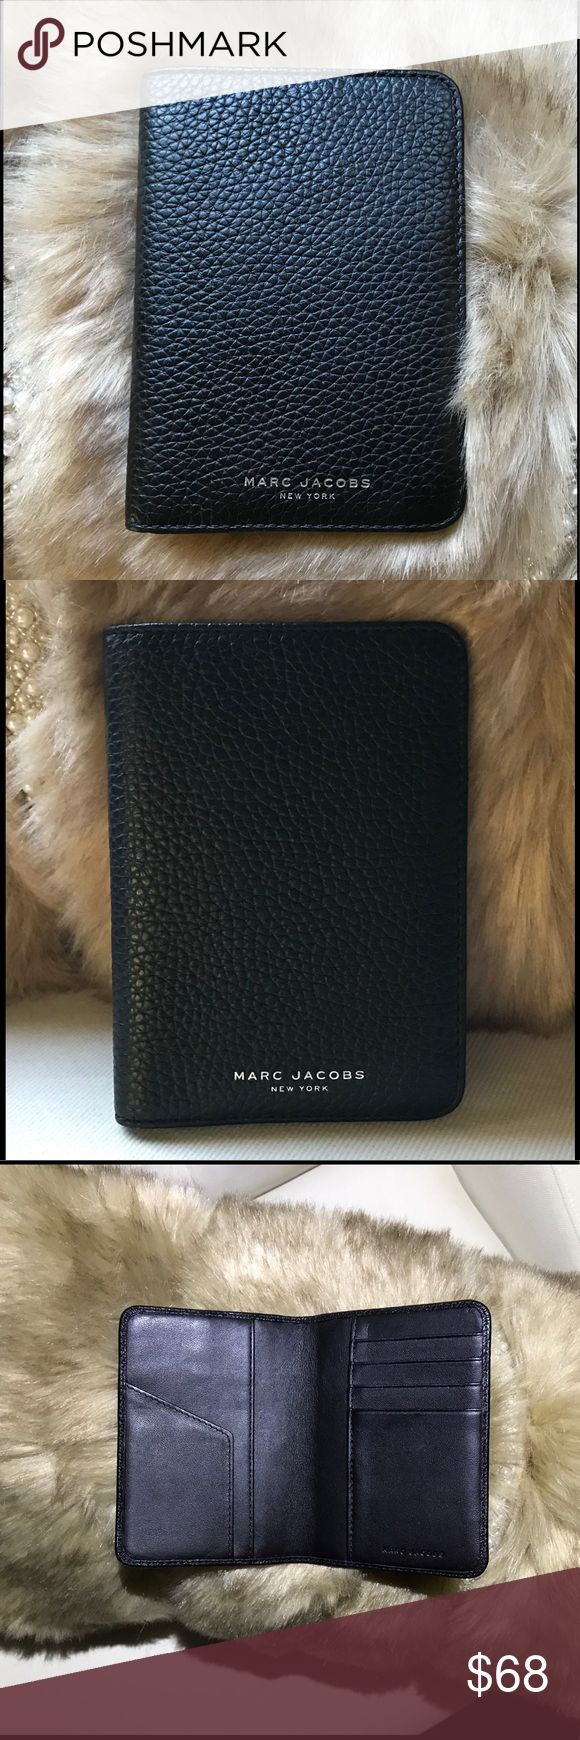 Marc Jacobs Gotham city pebble leather passport Beautiful pebble black leather unisex passport. Gold Marc Jacobs logo on front and Marc Jacobs embossed inside. 4 slots for credit cards and soft smooth leather. Perfect condition never used. Great Christmas gift 🎁 Marc Jacobs Bags Wallets